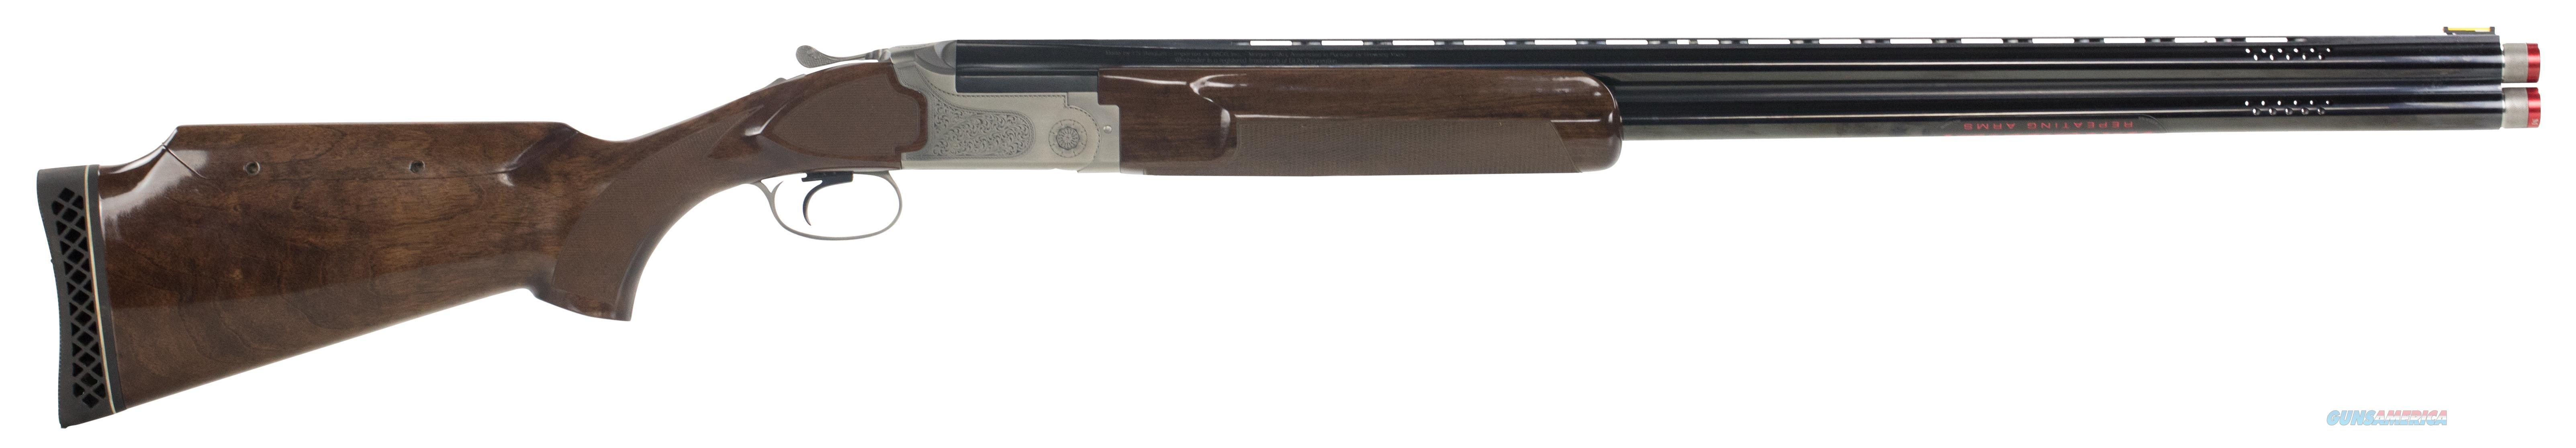 "Winchester Guns 513059493 101 O/U 12 Gauge 30"" 2.75"" Turkish Walnut Stk Nickeled Aluminum Alloy Rcvr Adj Comb 513059493  Guns > Shotguns > W Misc Shotguns"